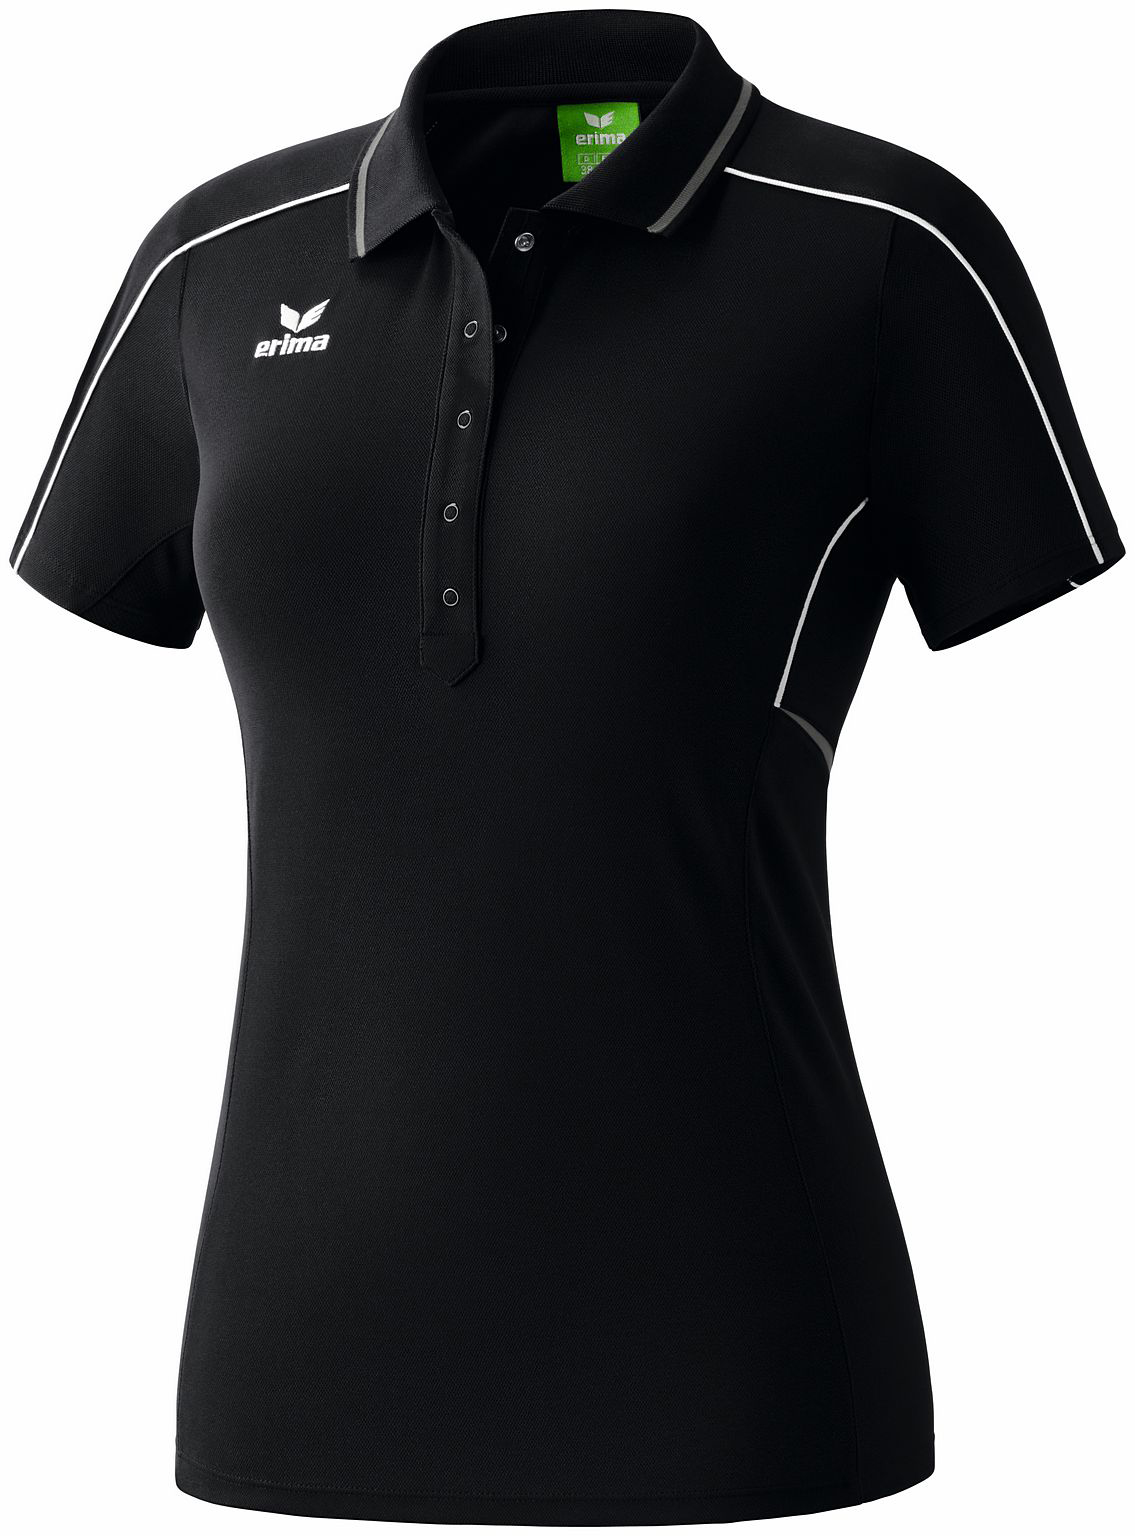 Damen Poloshirt GOLD MEDAL, black/granite/white, 40